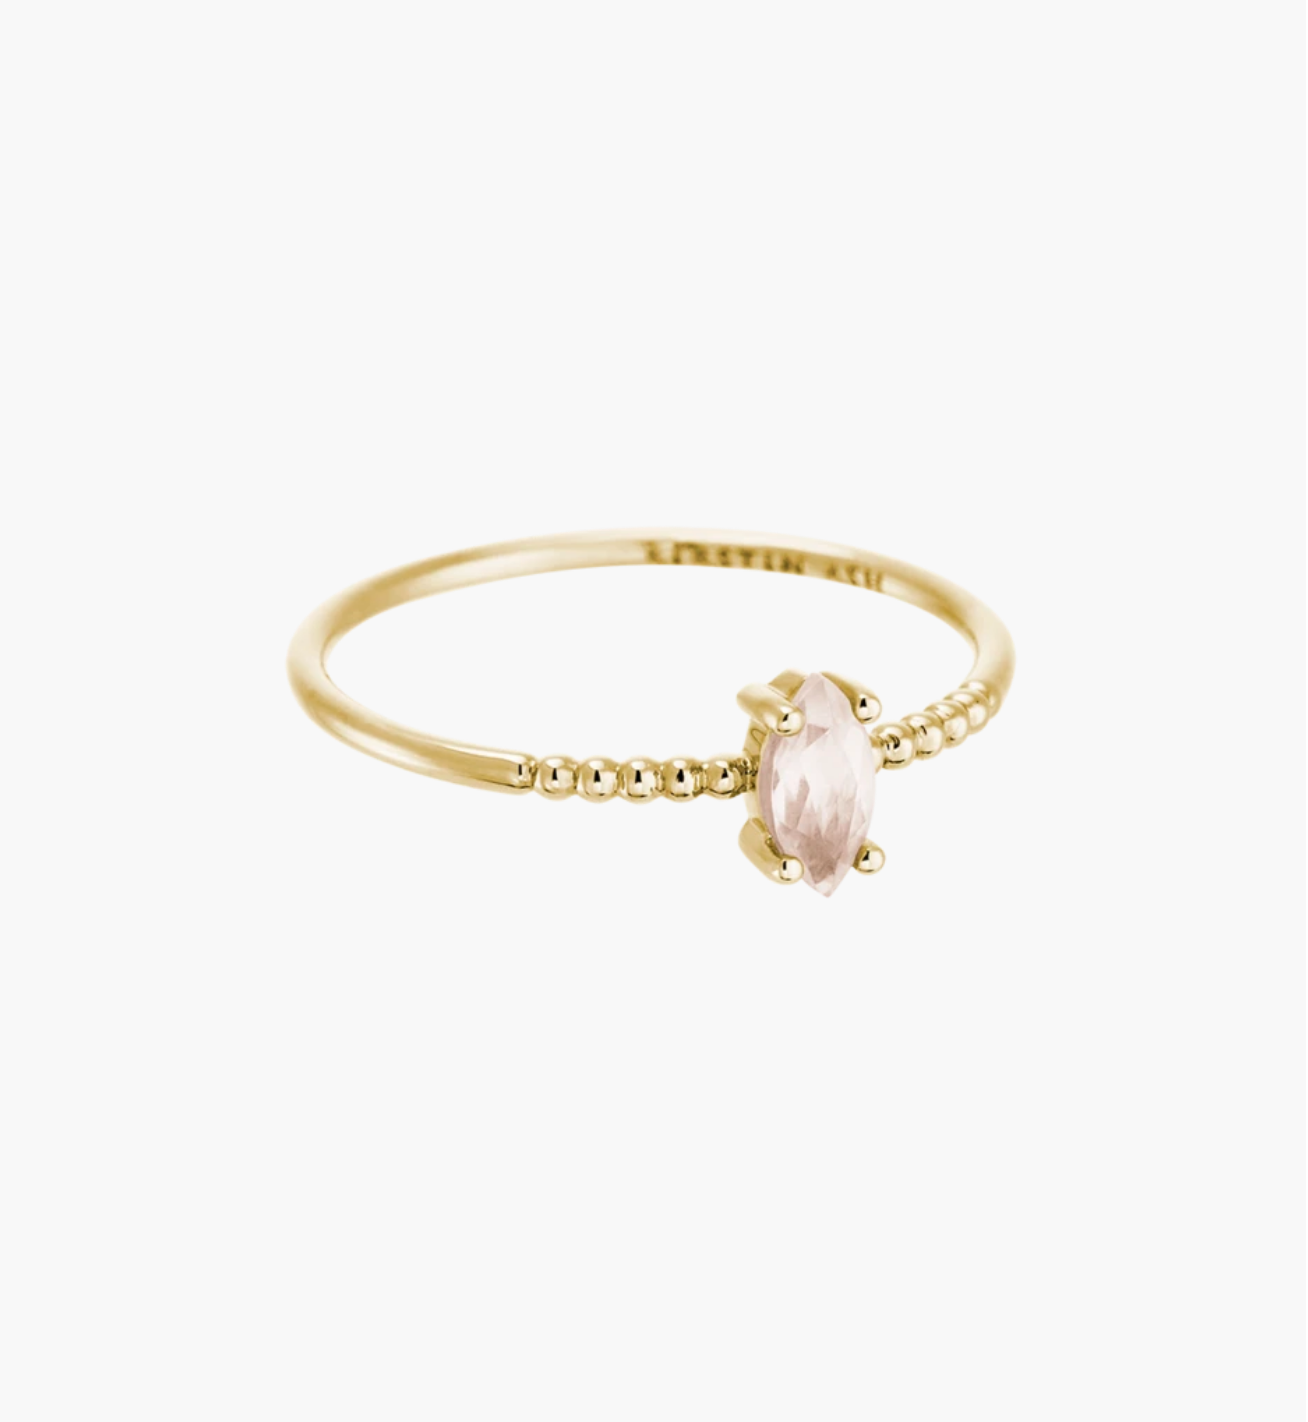 Kirstin Ash Rose quartz Marquise Ring - 14K Gold